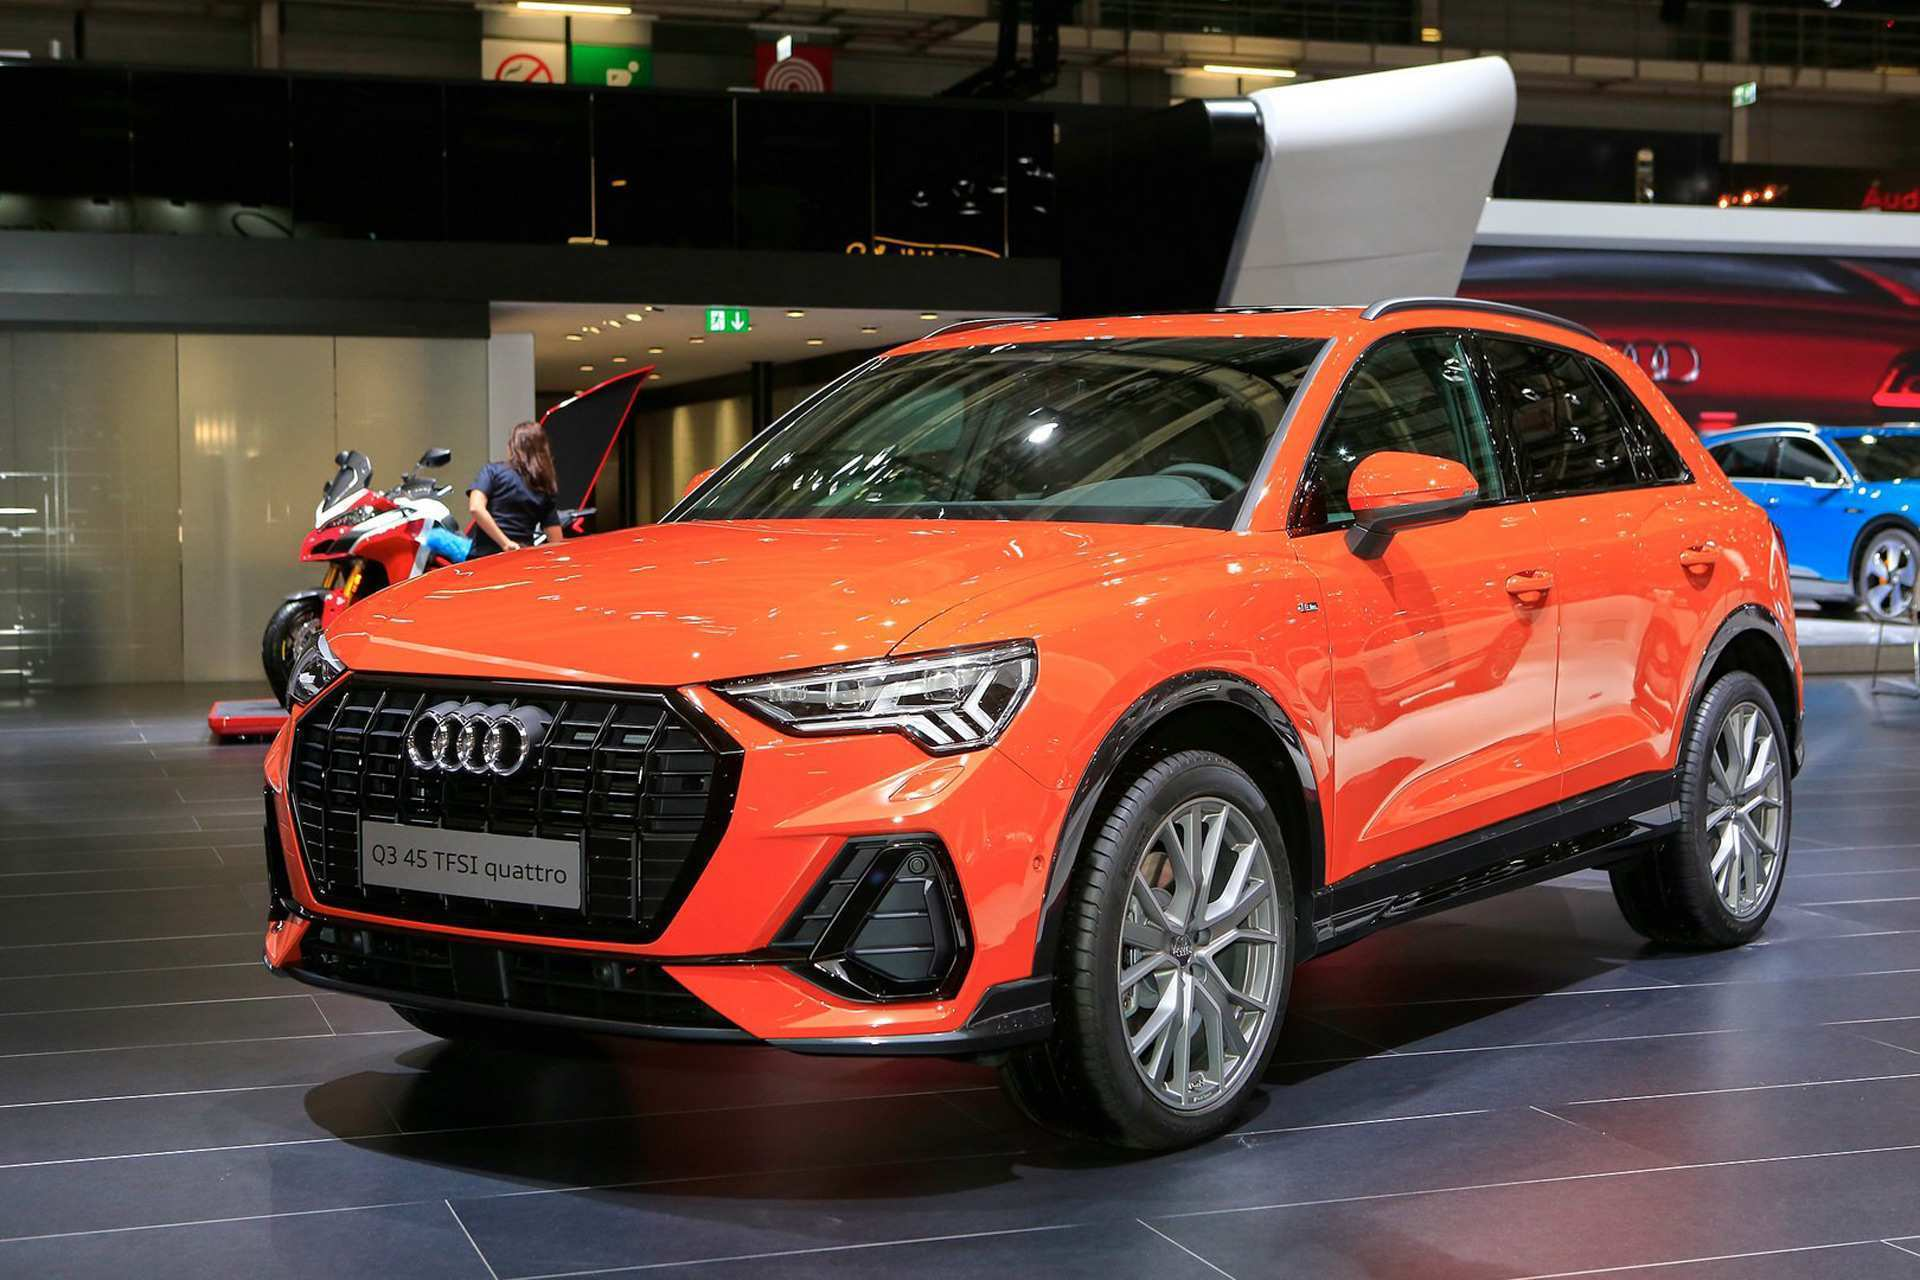 55 Great 2020 Audi Q3 Reviews by 2020 Audi Q3